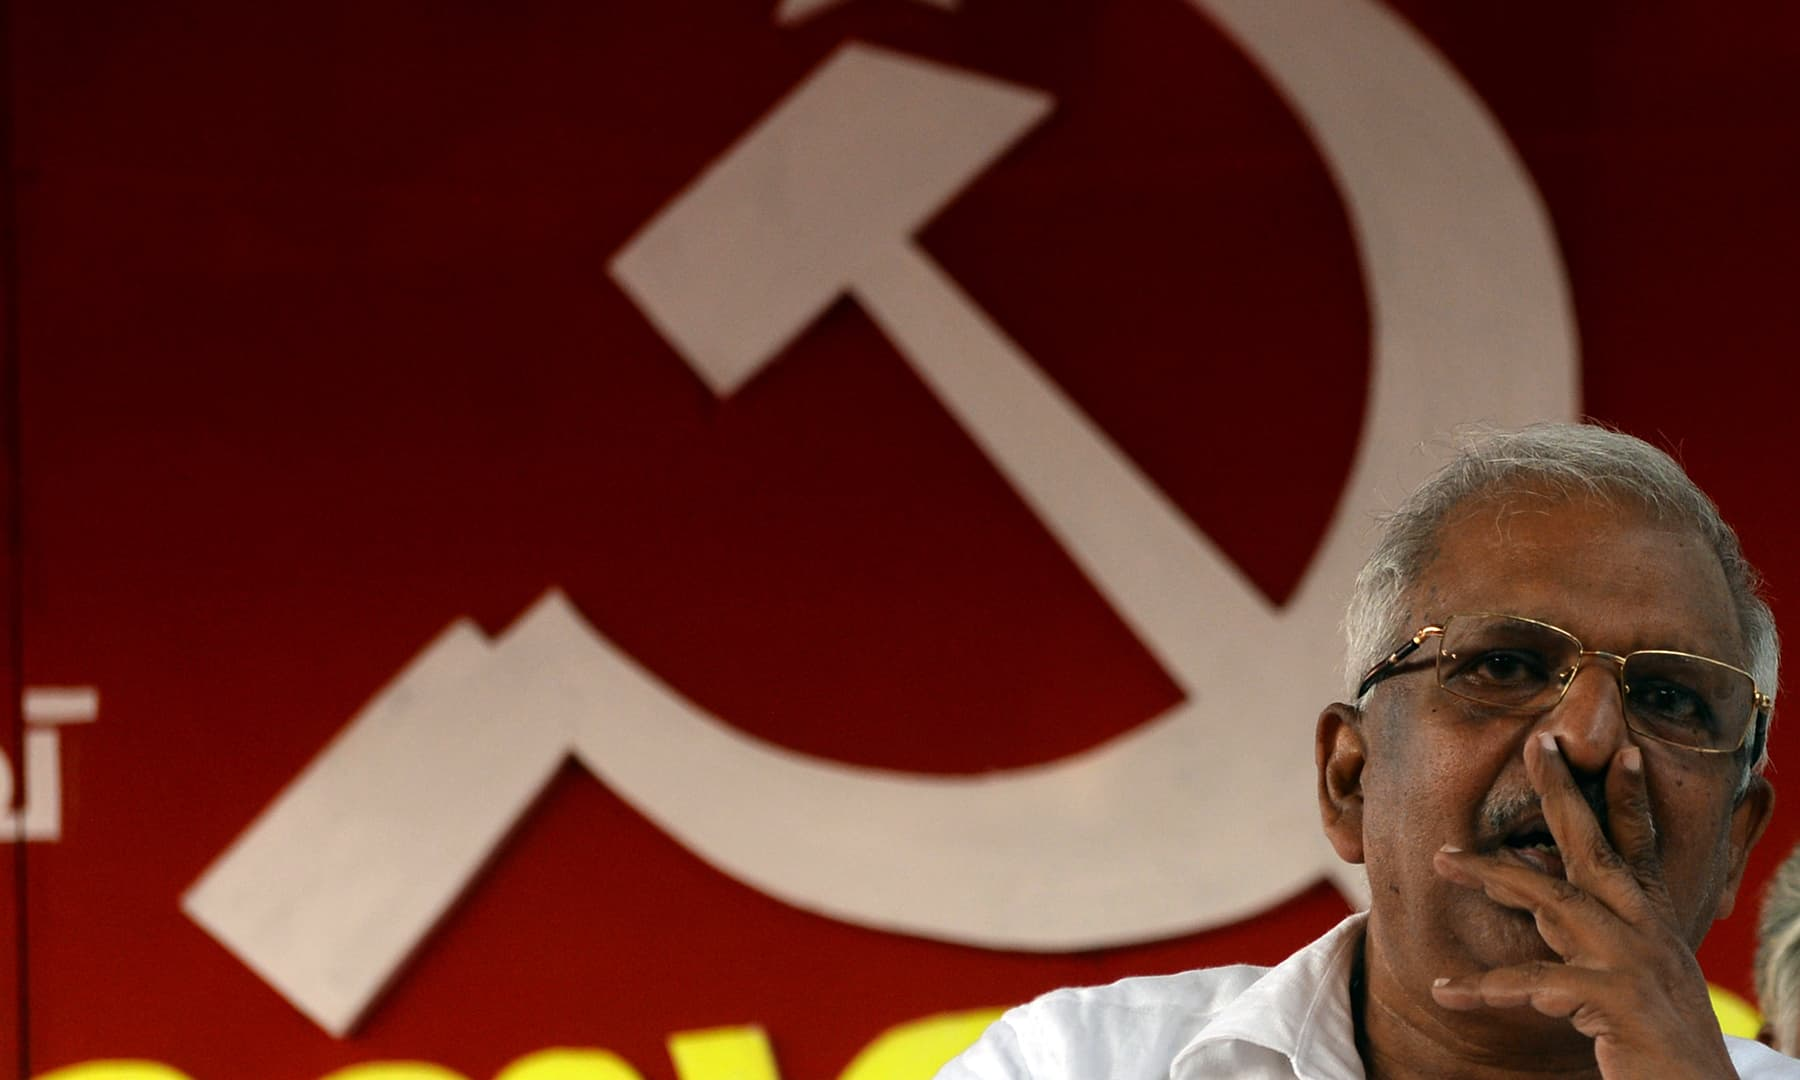 P. Jayarajan, a Communist Party of India (Marxist) electoral candidate and who was a target of political violence in 1999, holds up his thumbless hand during an interview. — AFP